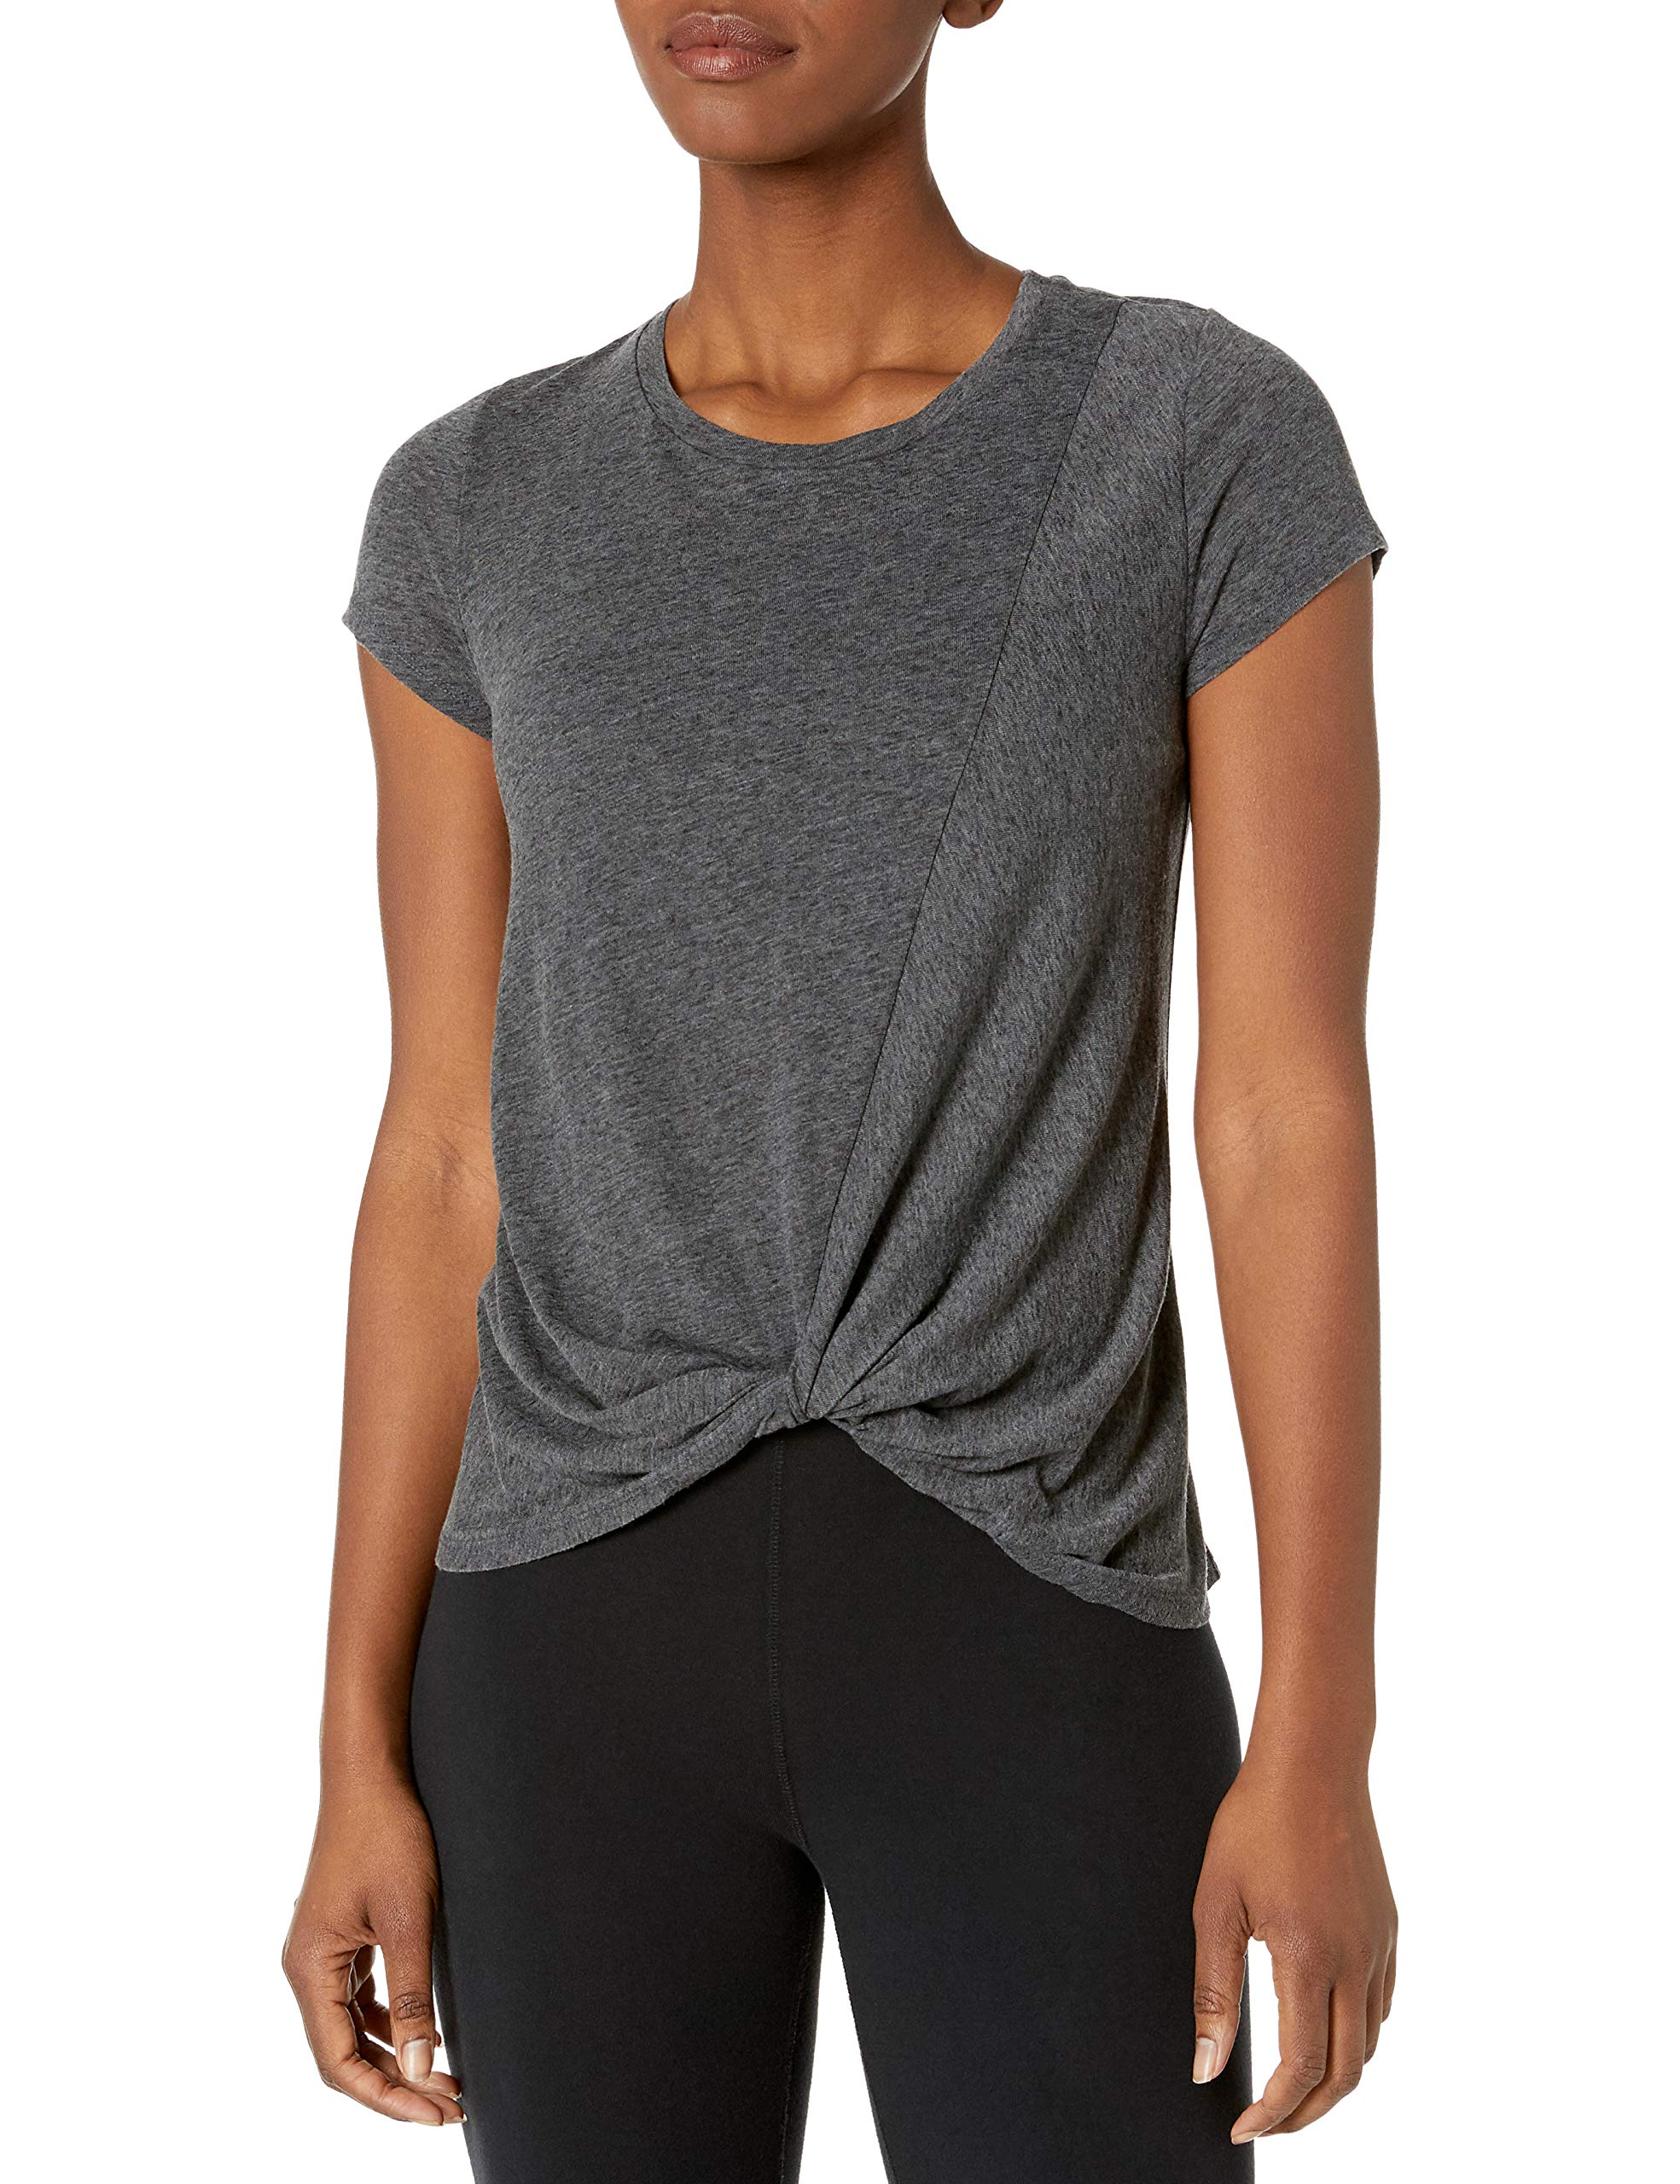 Amazon Brand - Core 10 Women's Tri-Blend Short-Sleeve Twisted Front Workout Tee